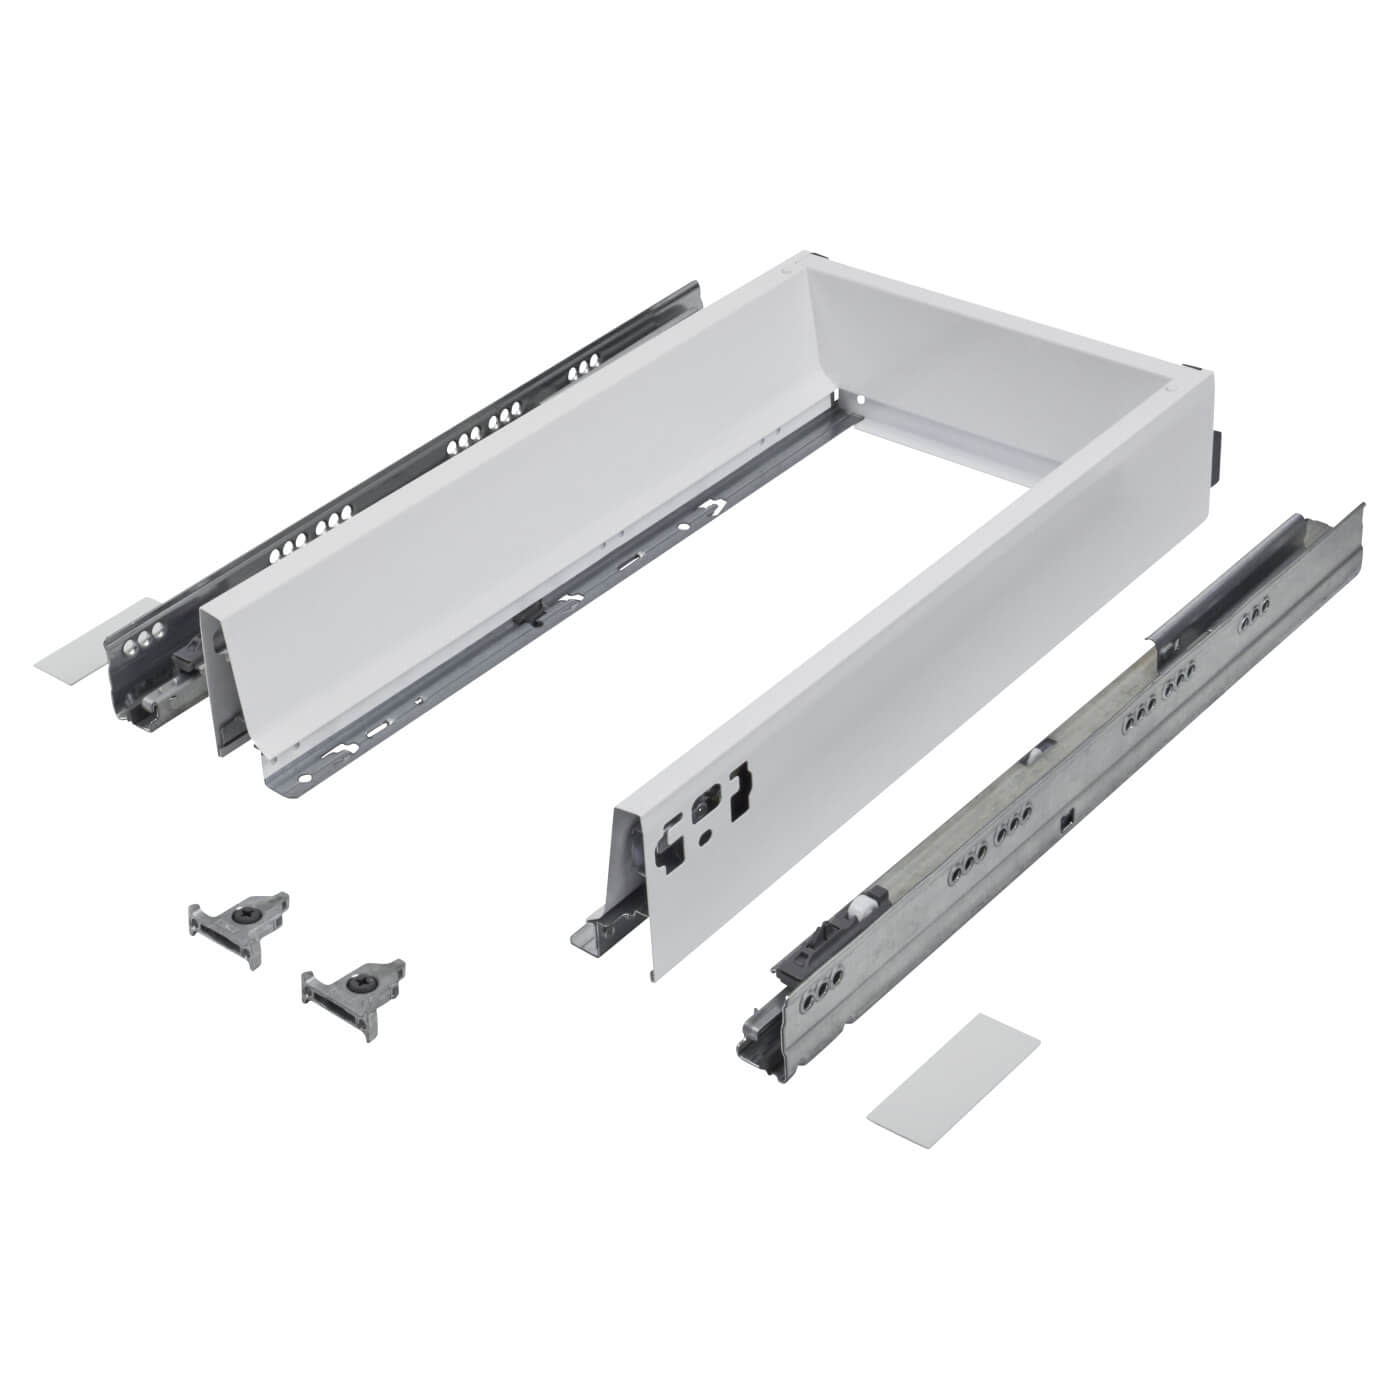 Blum TANDEMBOX ANTARO Drawer Pack - BLUMOTION Soft Close - (H) 84mm x (D) 450mm x (W) 400mm - White)